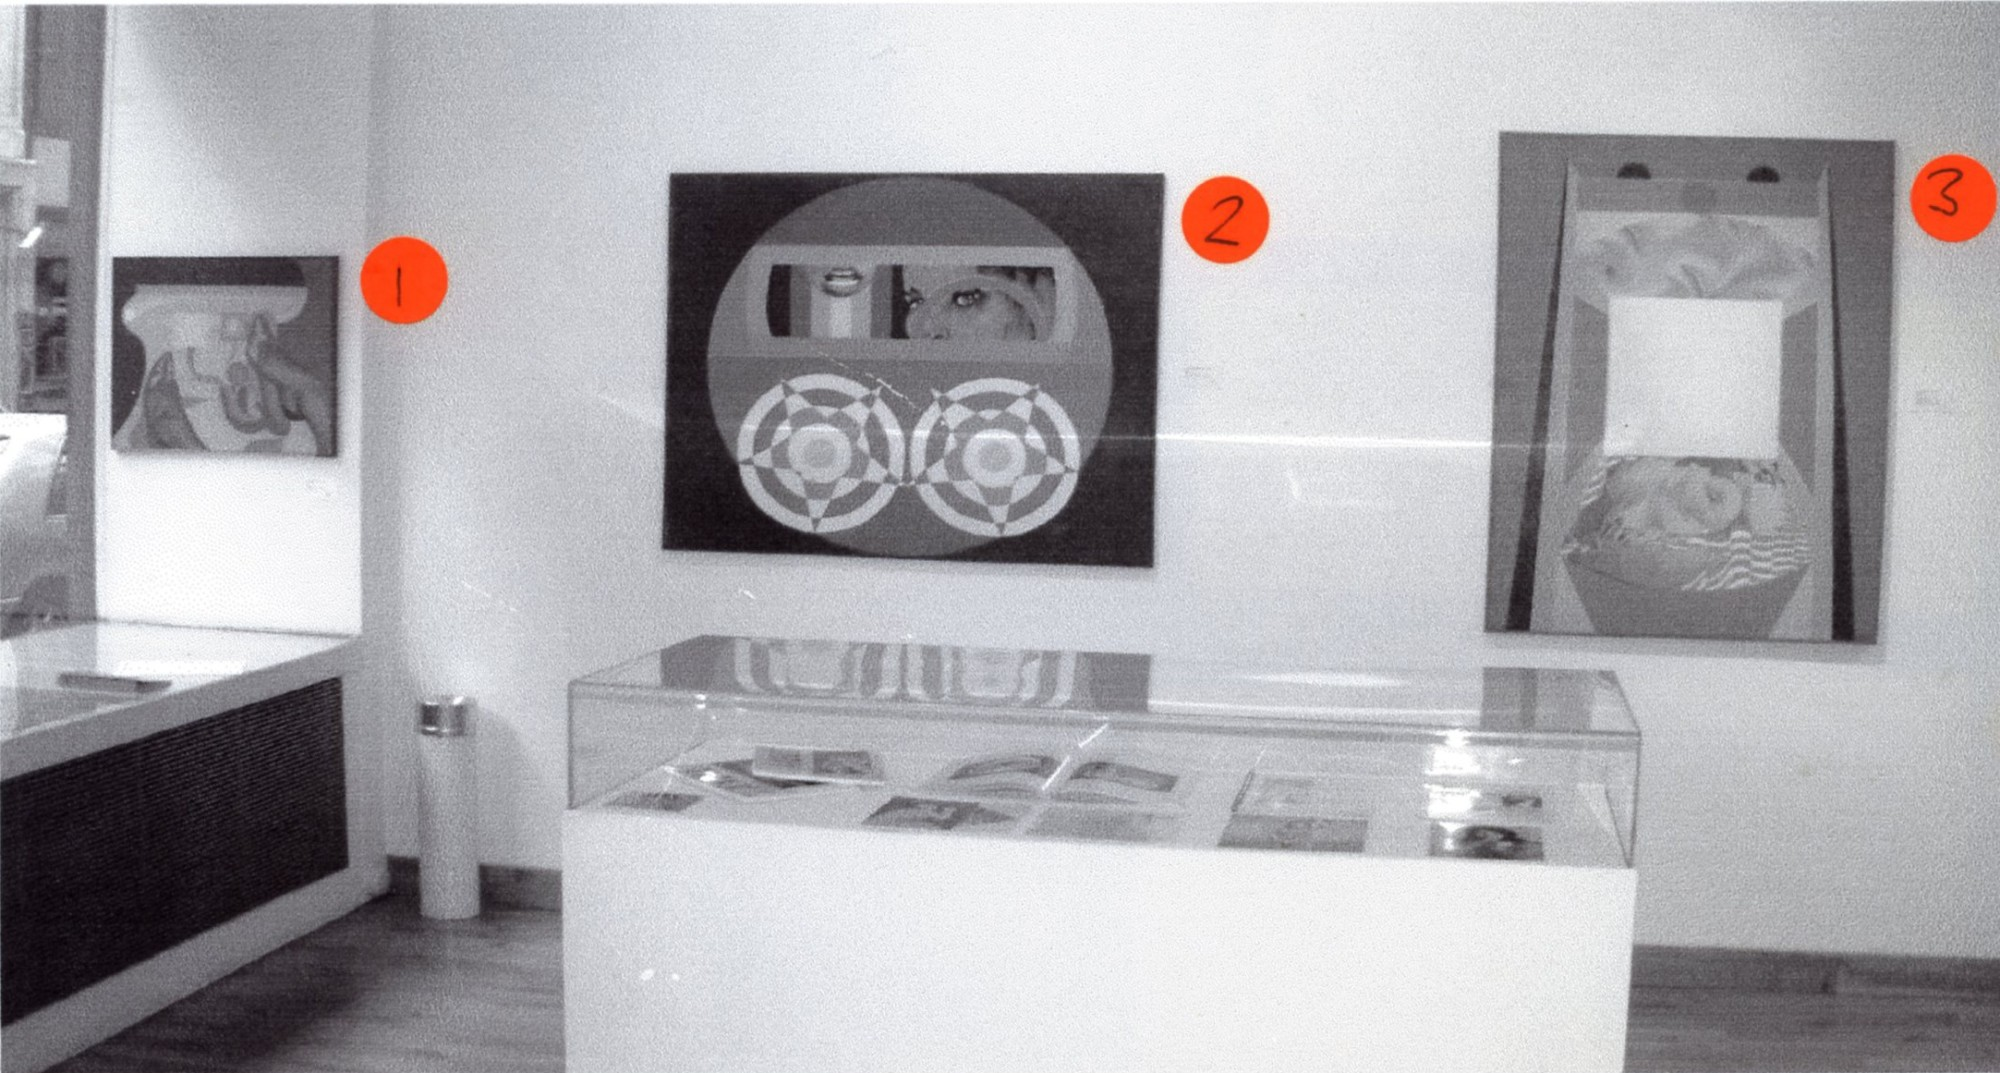 """<span class=""""link fancybox-details-link""""><a href=""""/exhibitions/131/works/image_standalone542/"""">View Detail Page</a></span><p>EVELYNE AXELL   EROTOMOBILES   05 JUN - 31 AUG 2003   Installation View</p>"""